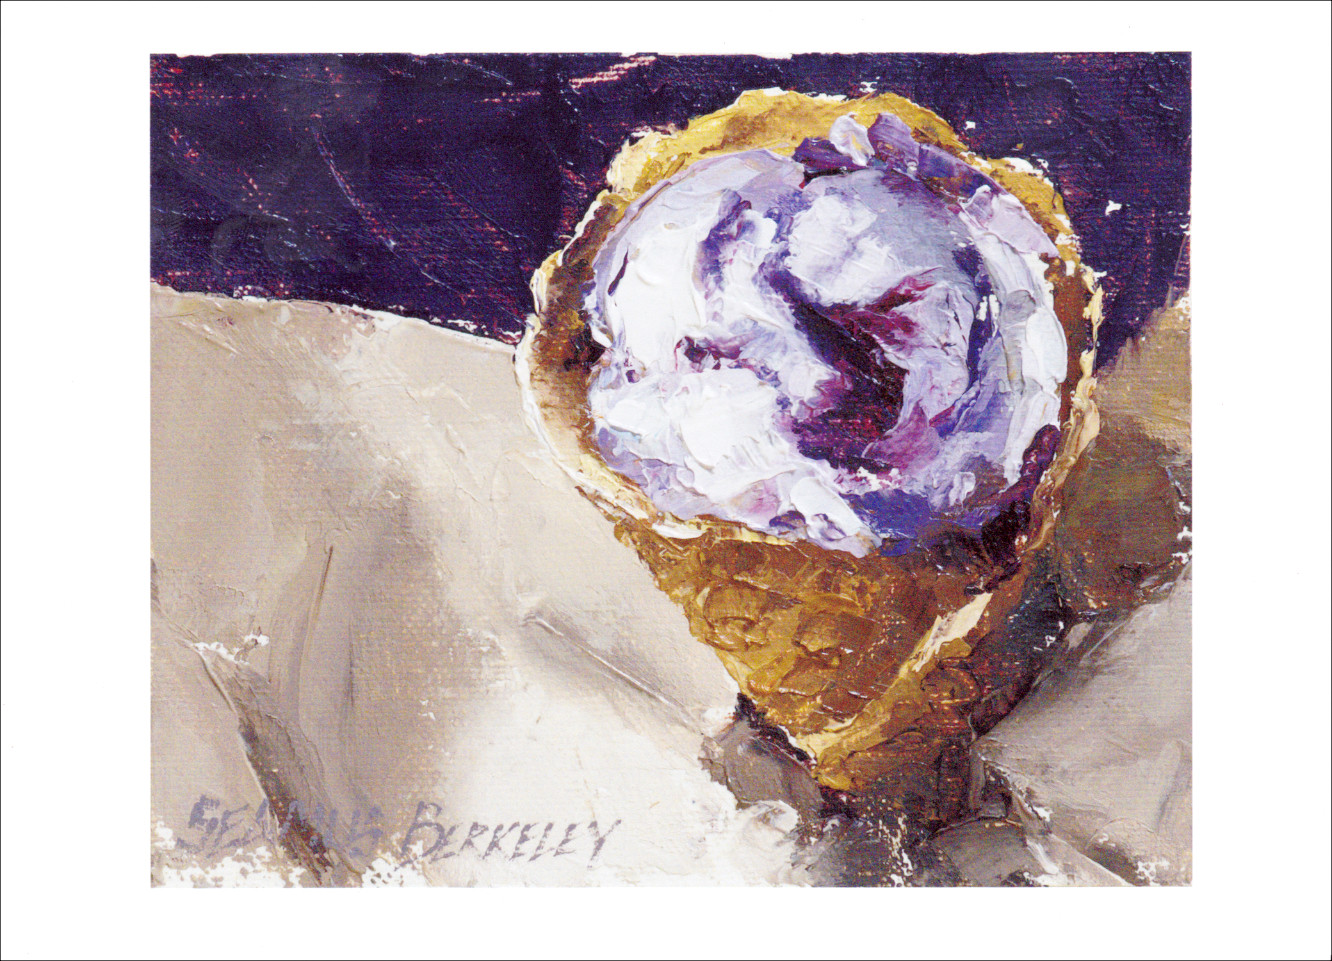 'Blueberry Goat Cheese Ice Cream' Notecard